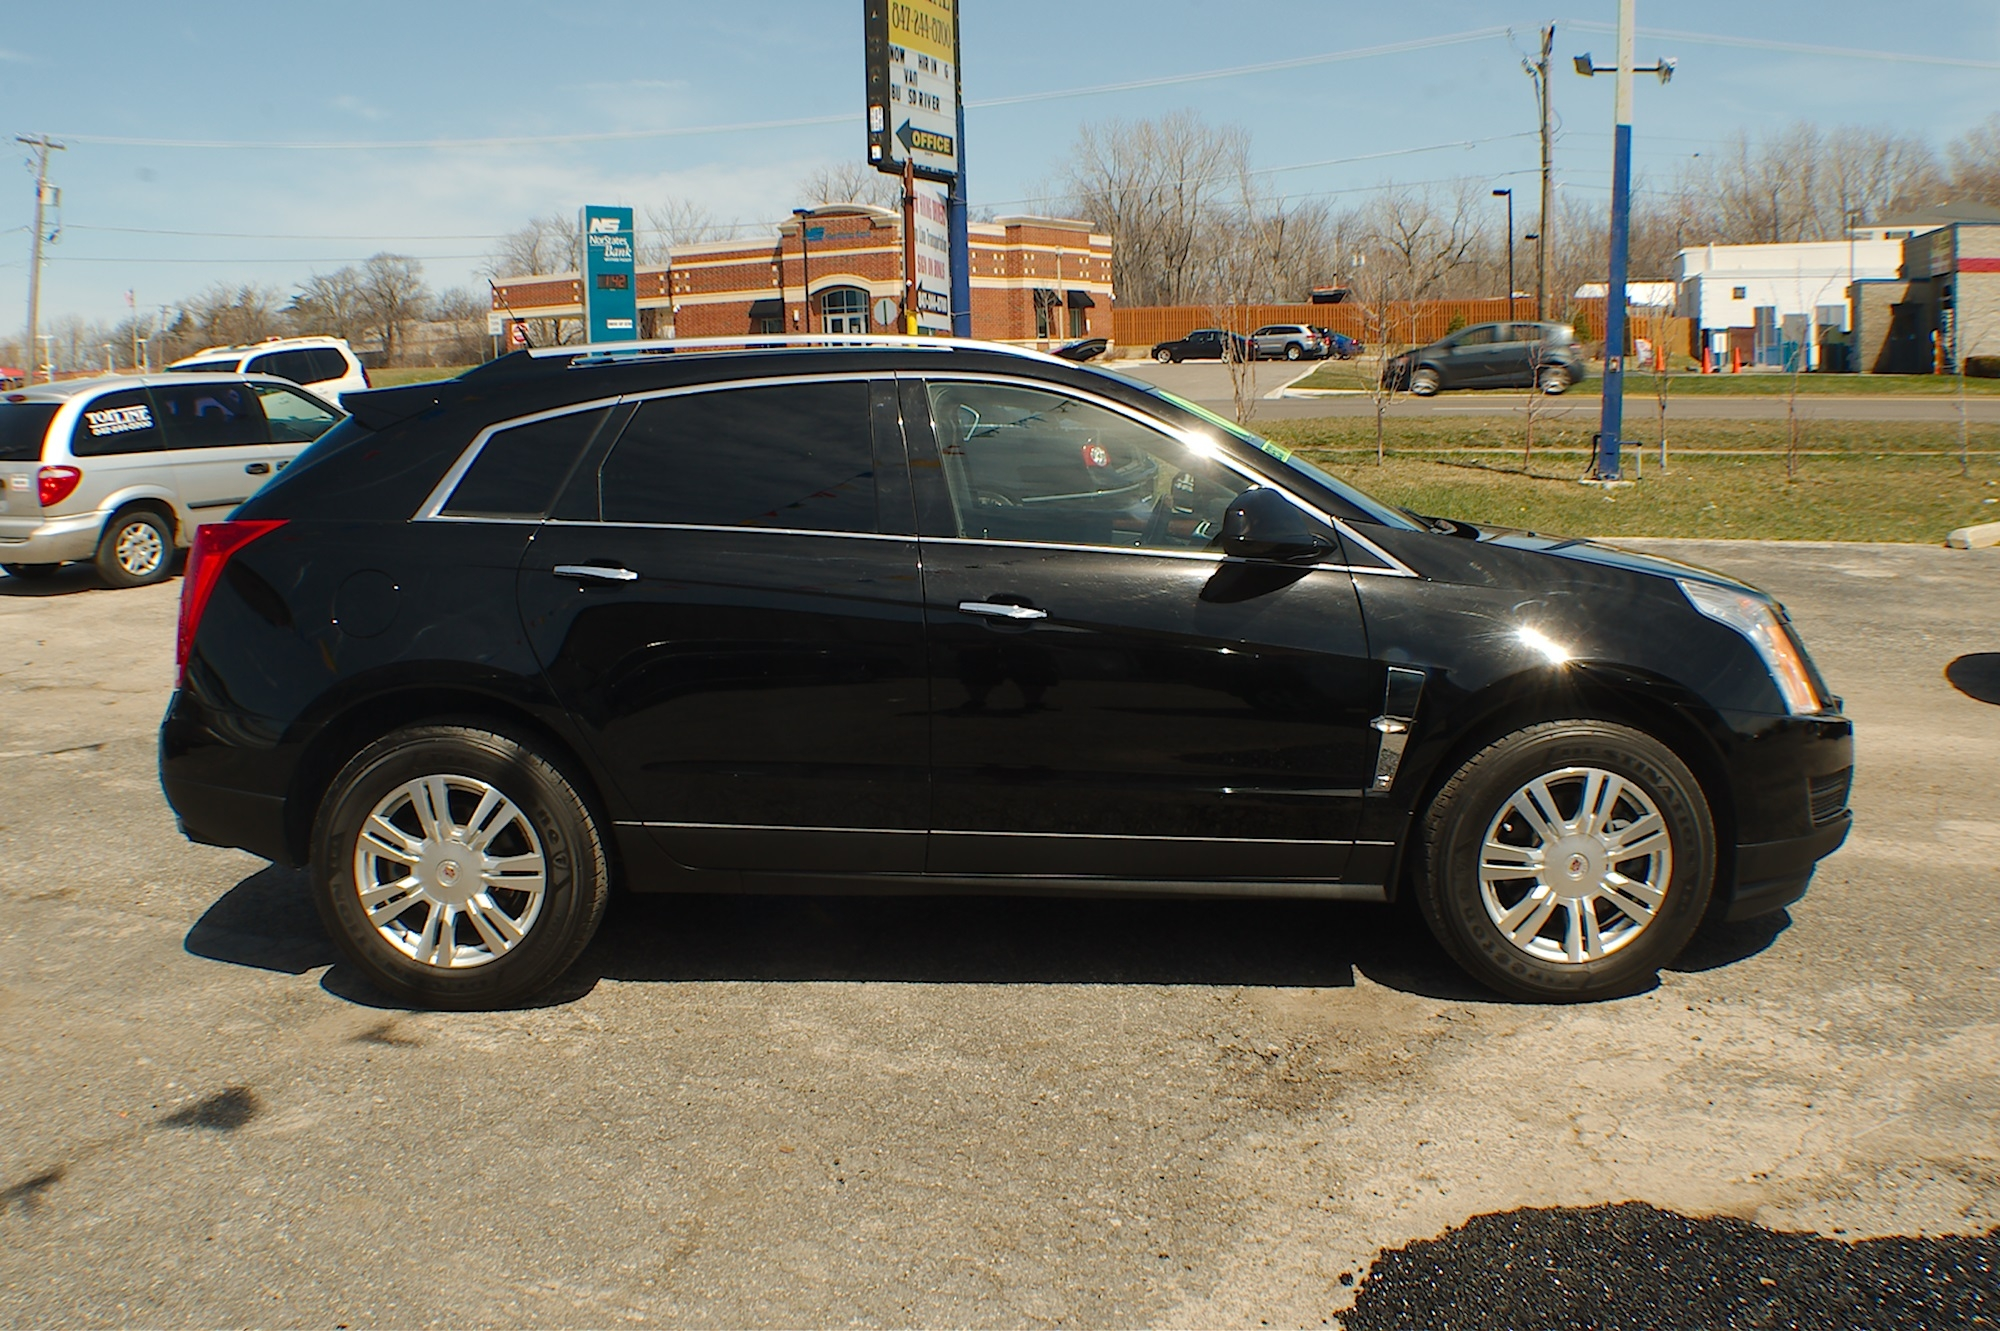 2010 Cadillac SRX Black Wagon Sale